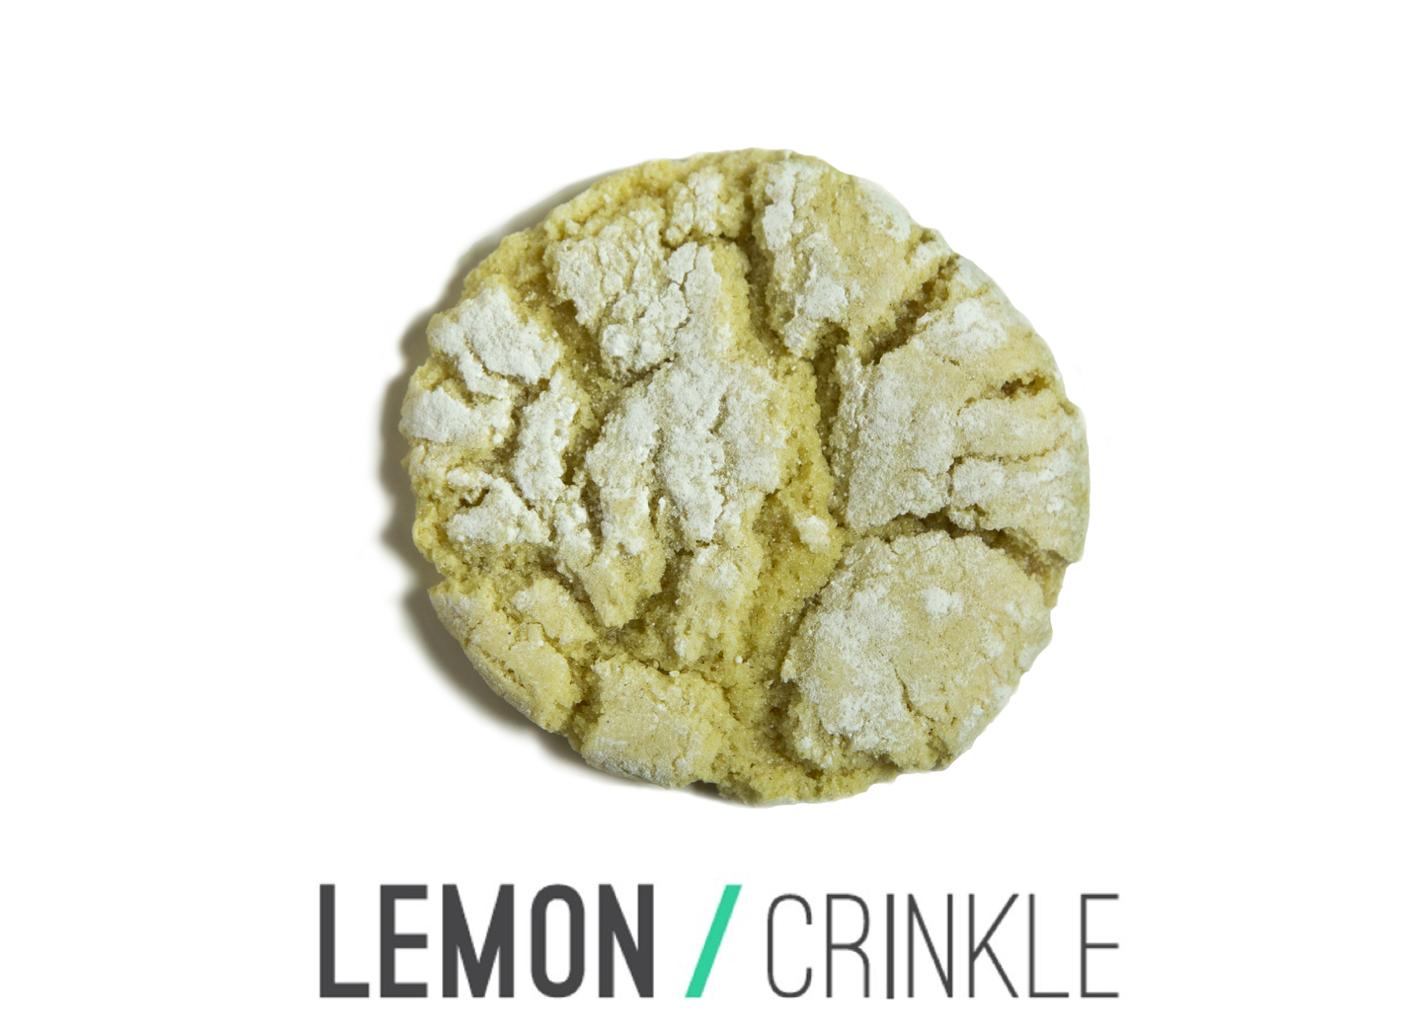 lemon crinkle.jpg